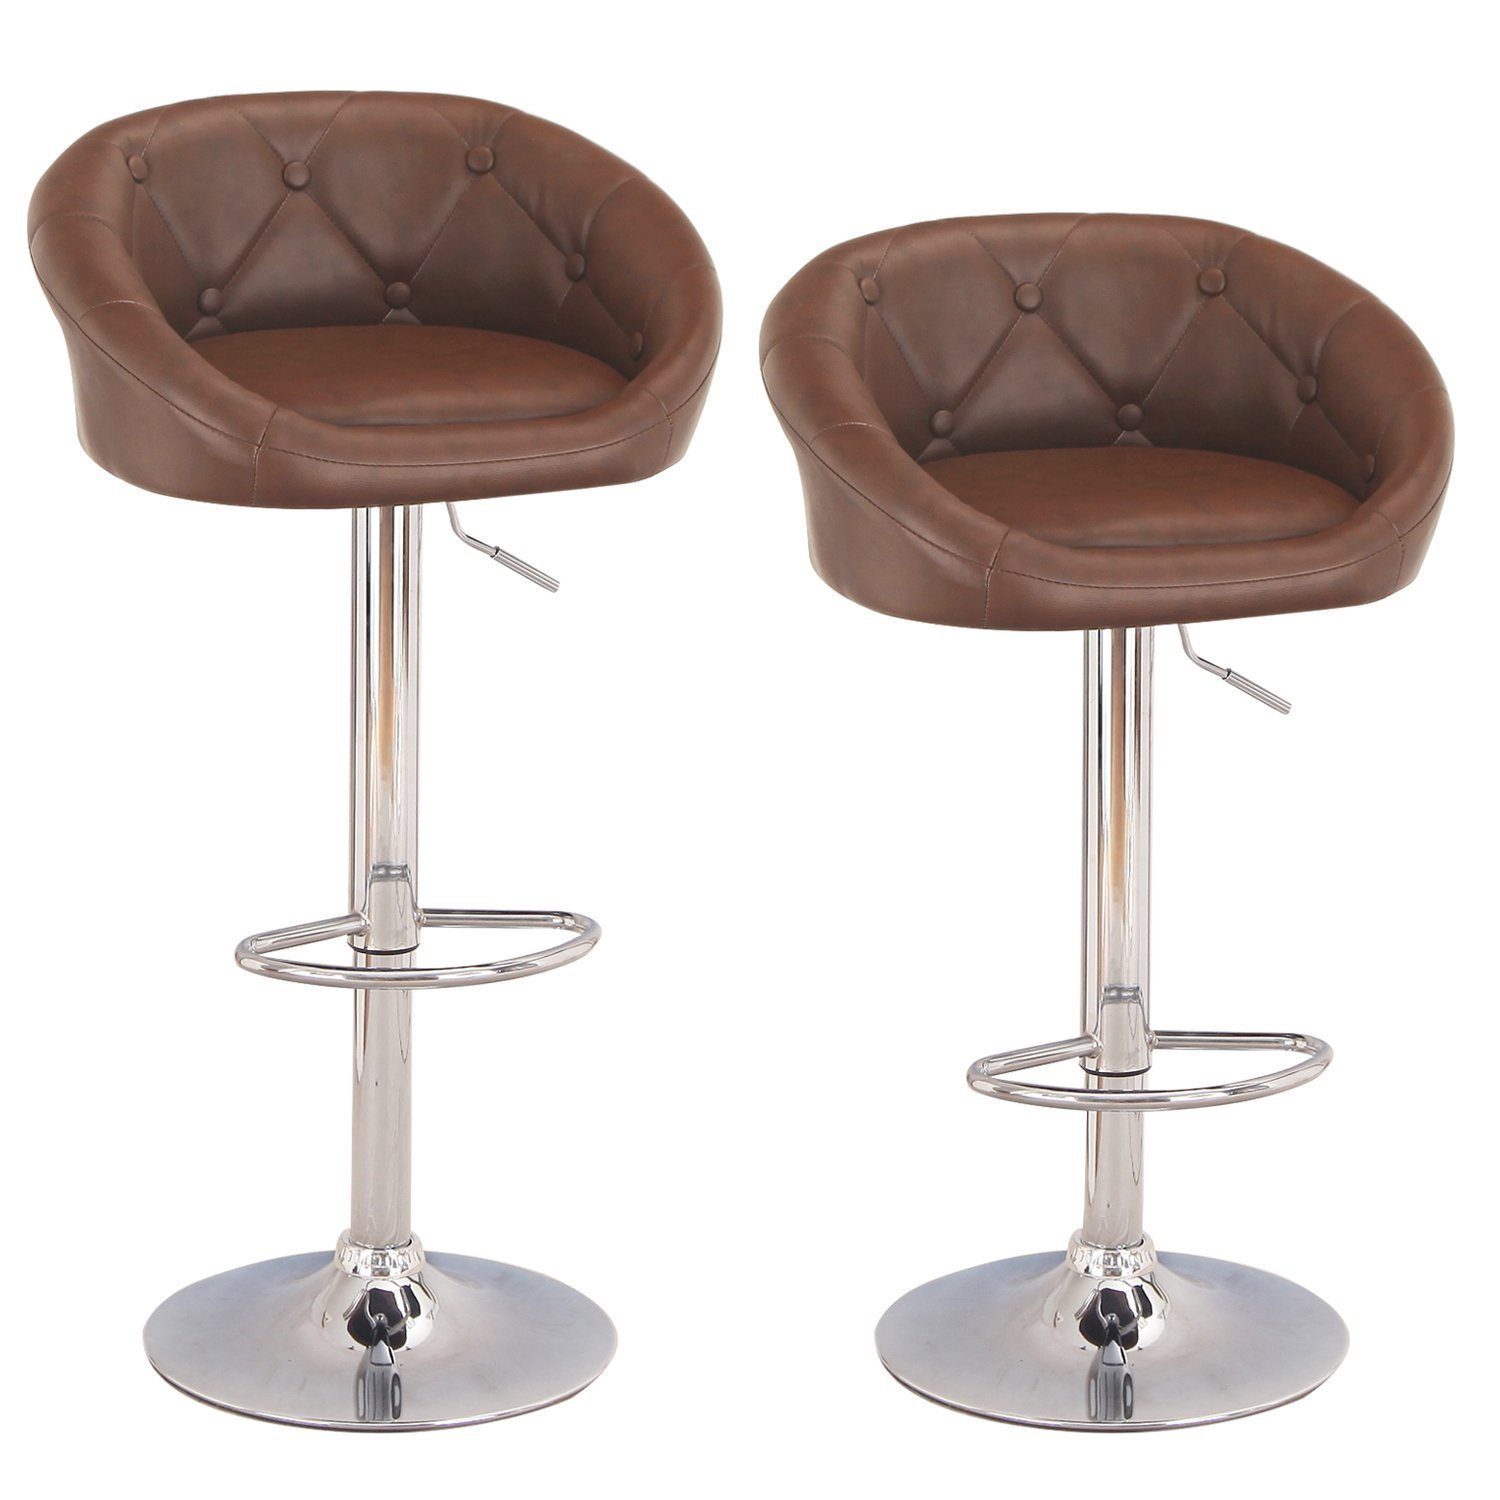 MBTC Delton Cafeteria Bar Stool Chair In Light Brown (Set Of 2 Pcs)